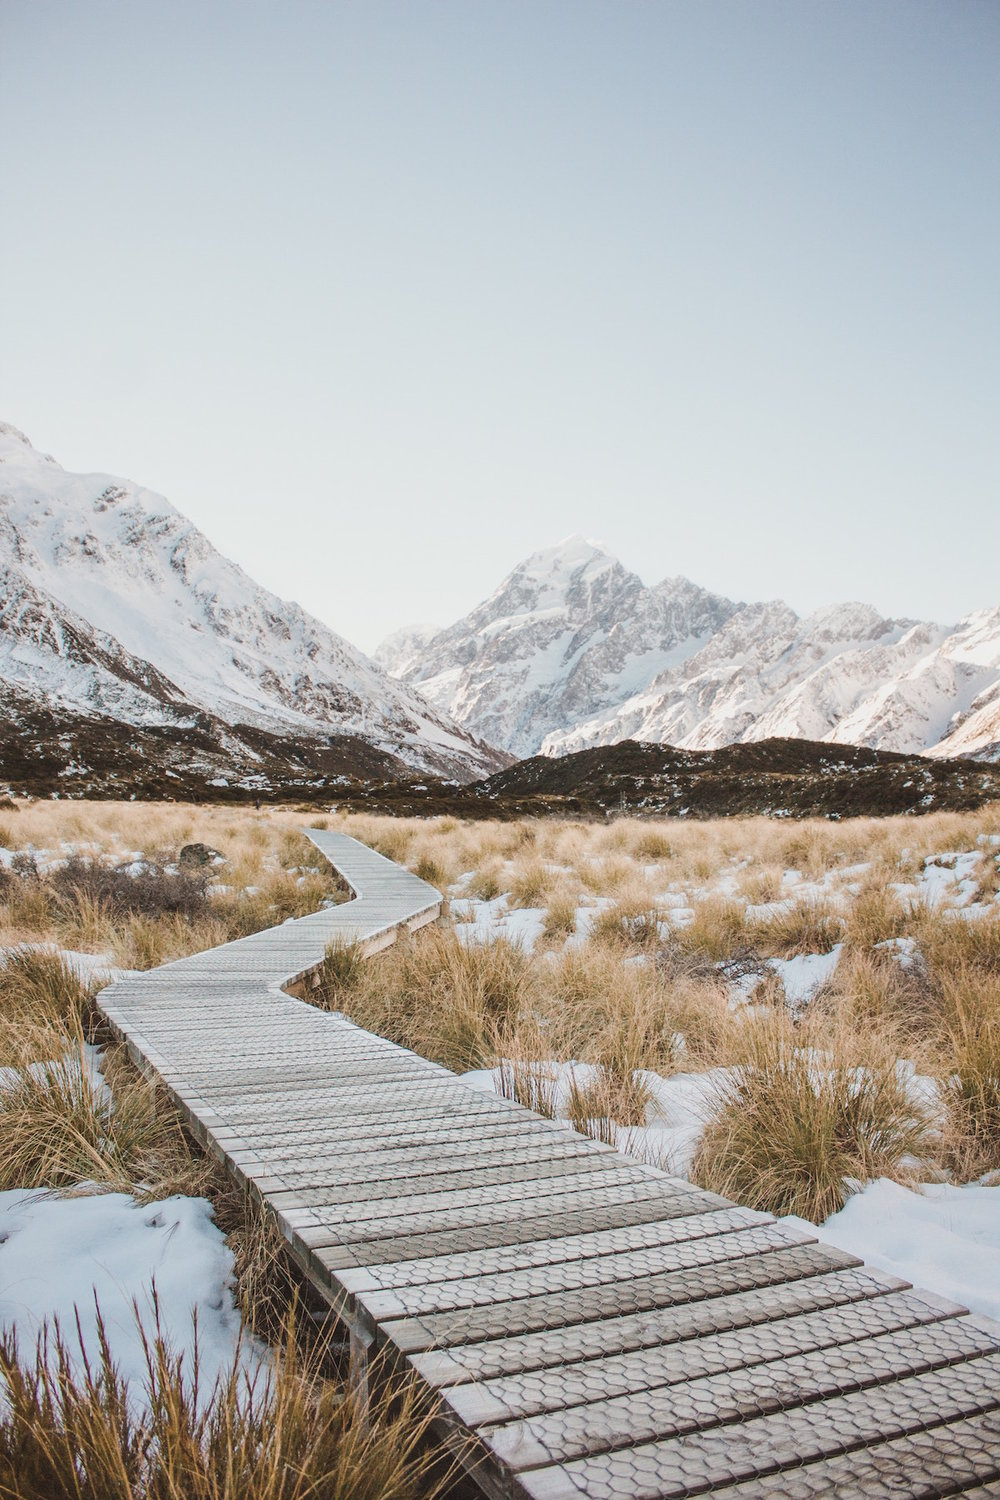 Wooden walking path over snowy fields, heading toward mountains